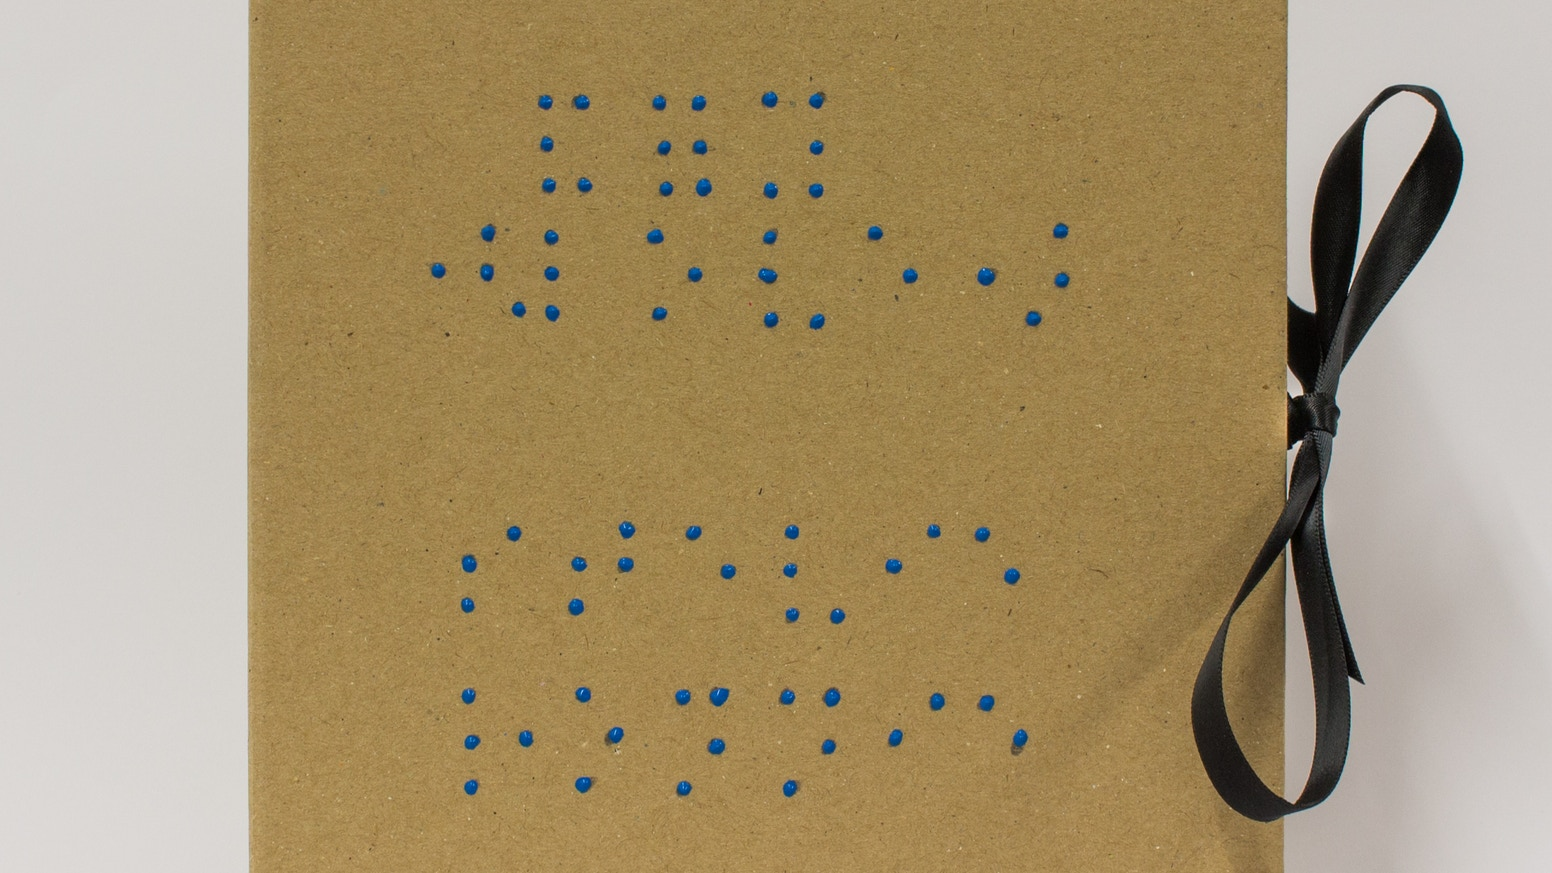 An edition of 100 handmade artist's books containing 5 Braille poems presented in a box. Part of Kickstarter's Make/100 campaign